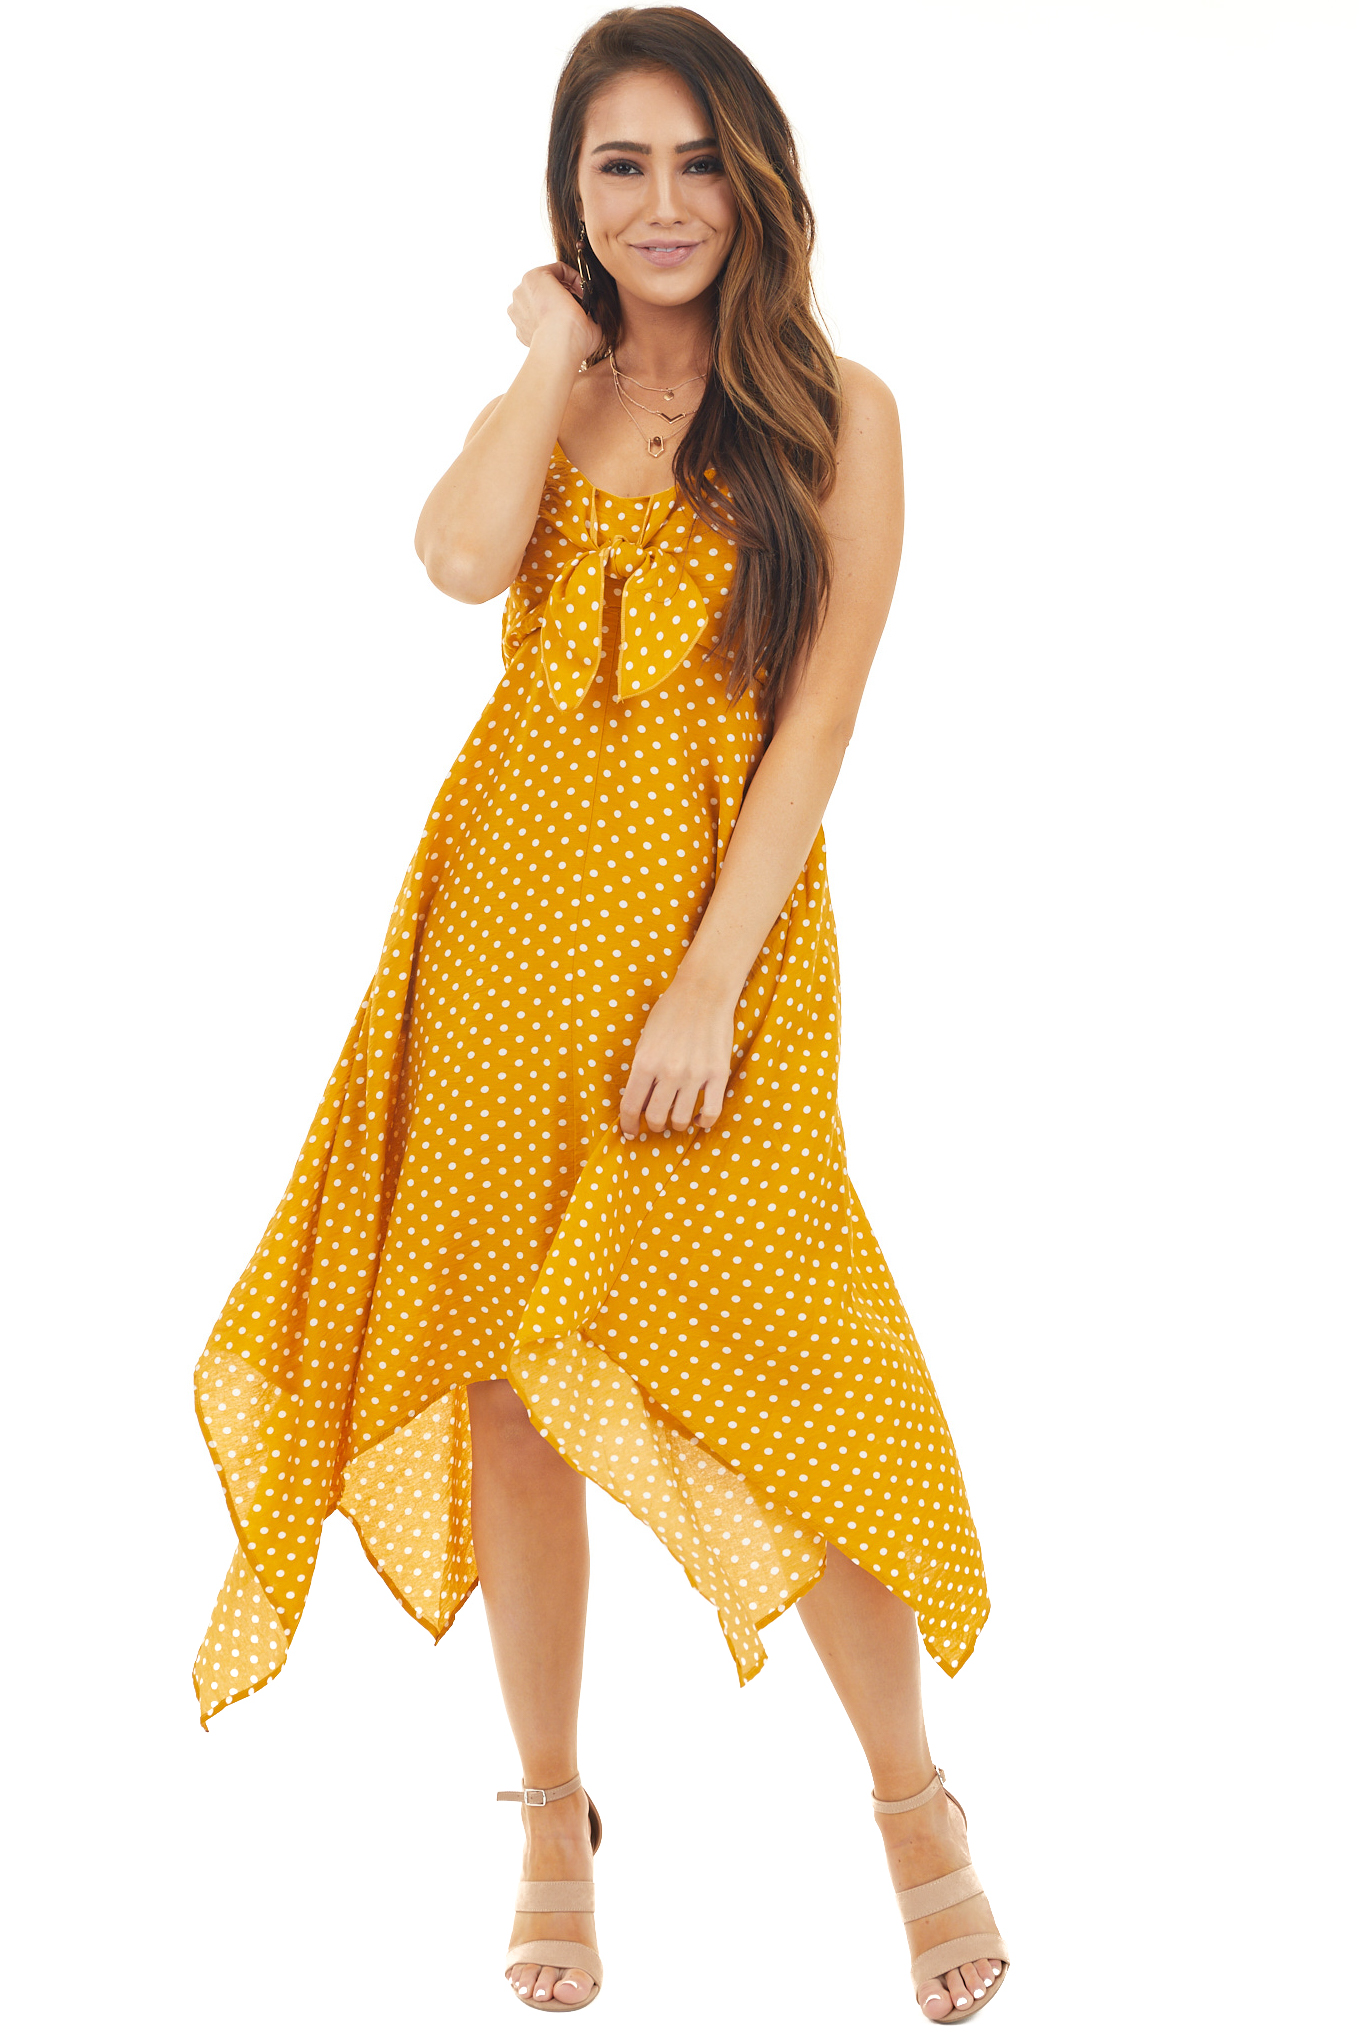 Marigold and Ivory Polka Dot Dress with Bust Tie Detail